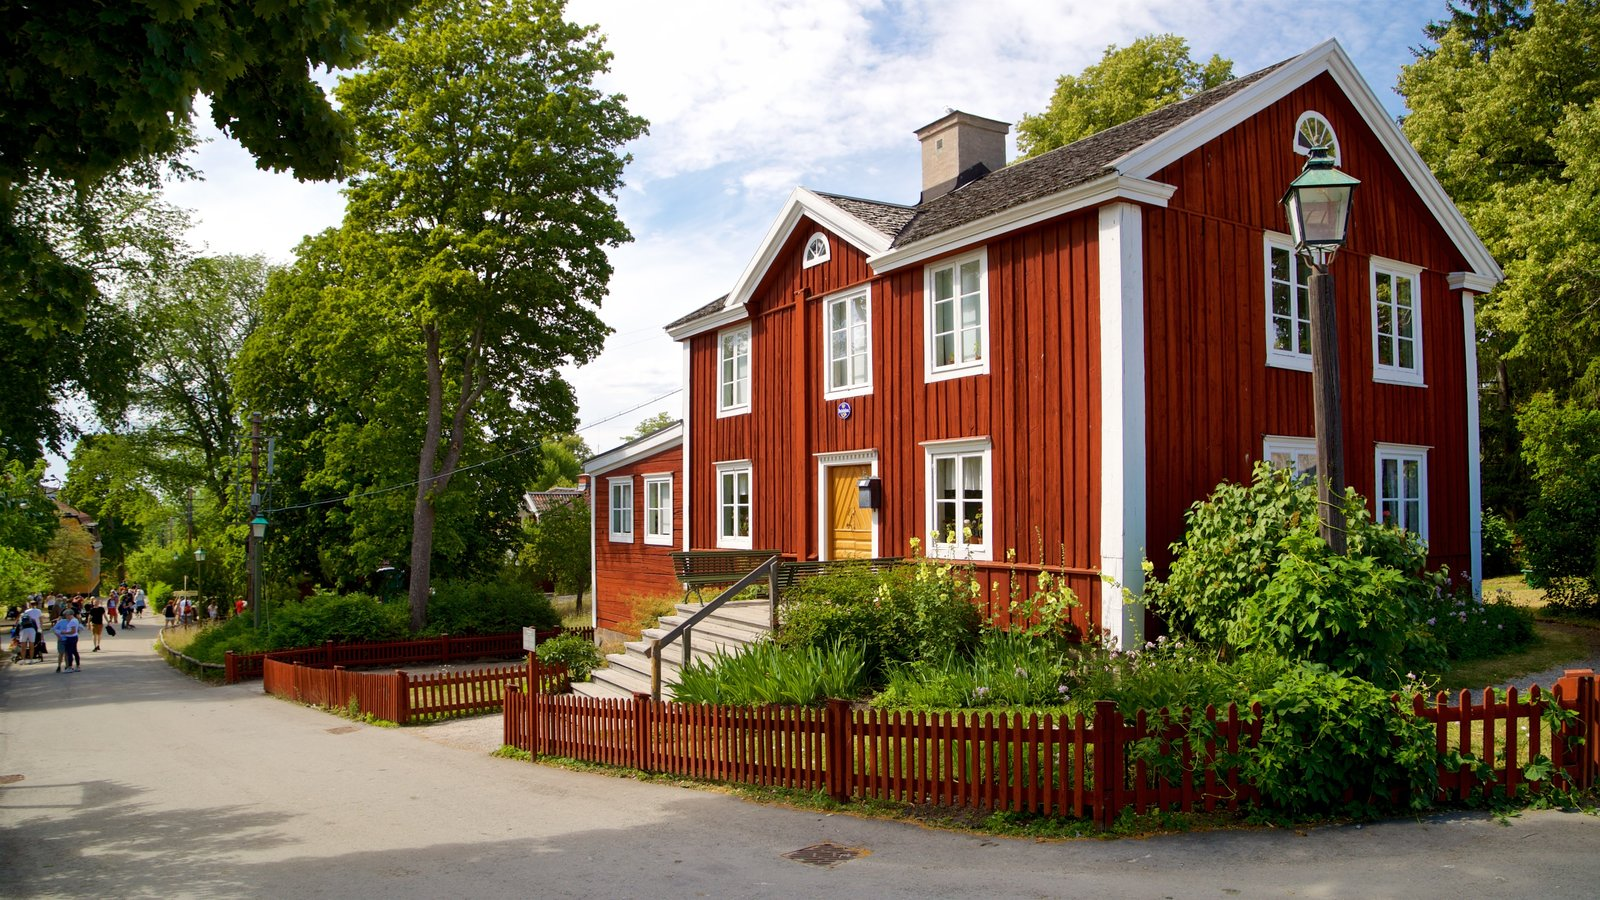 Skansen featuring heritage architecture and a small town or village